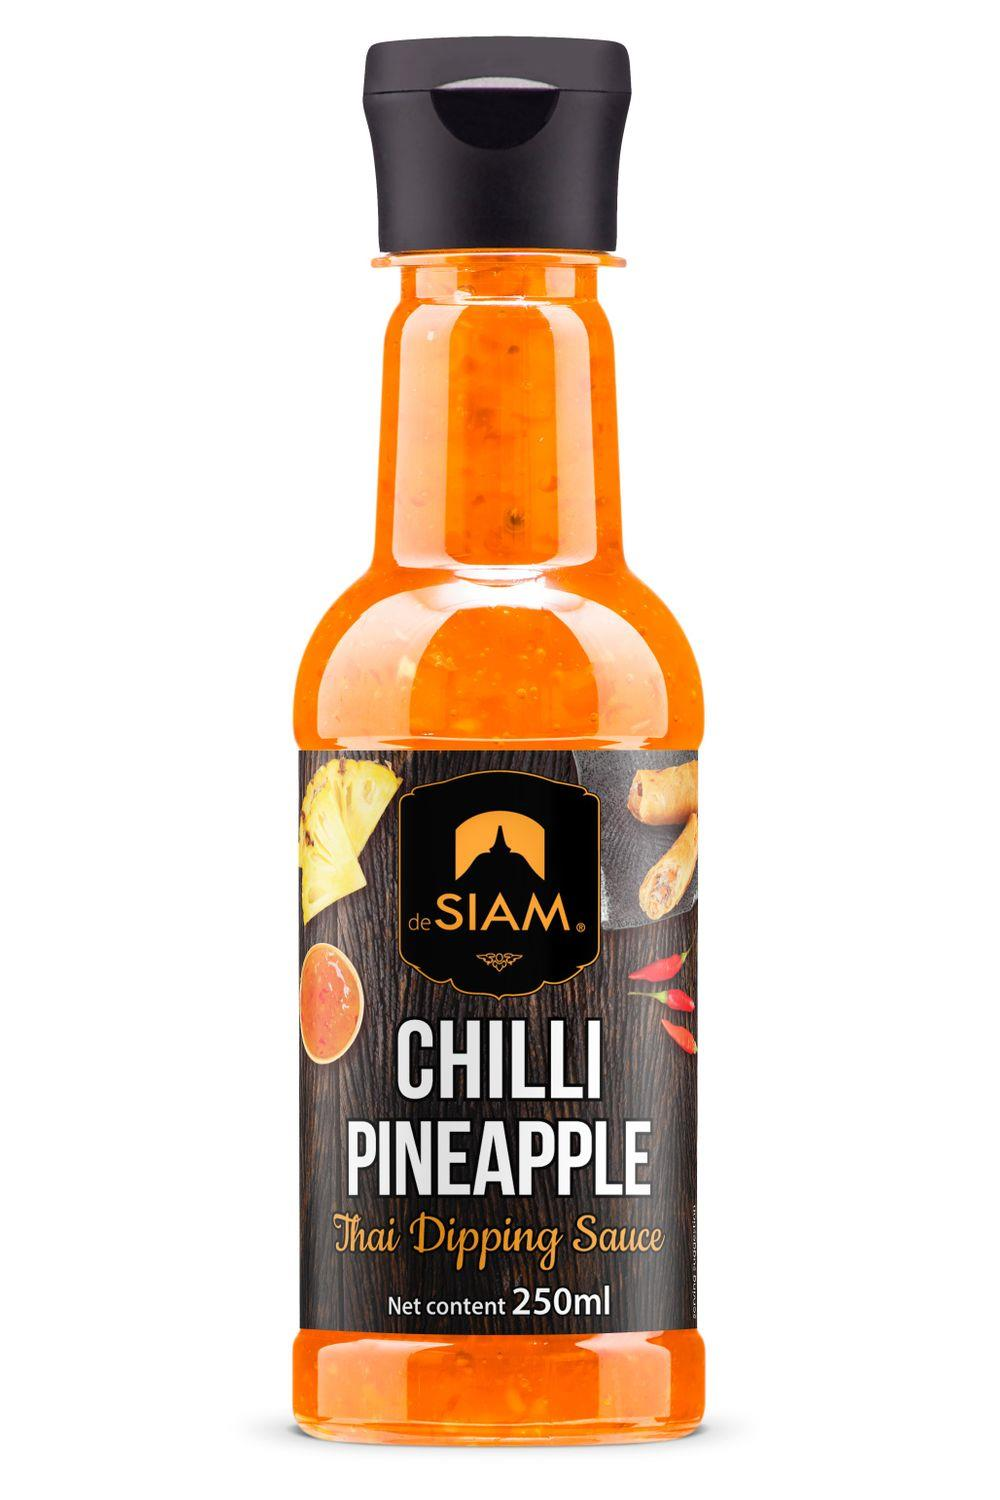 DeSiam Chili Pineapple Dipping Sauce